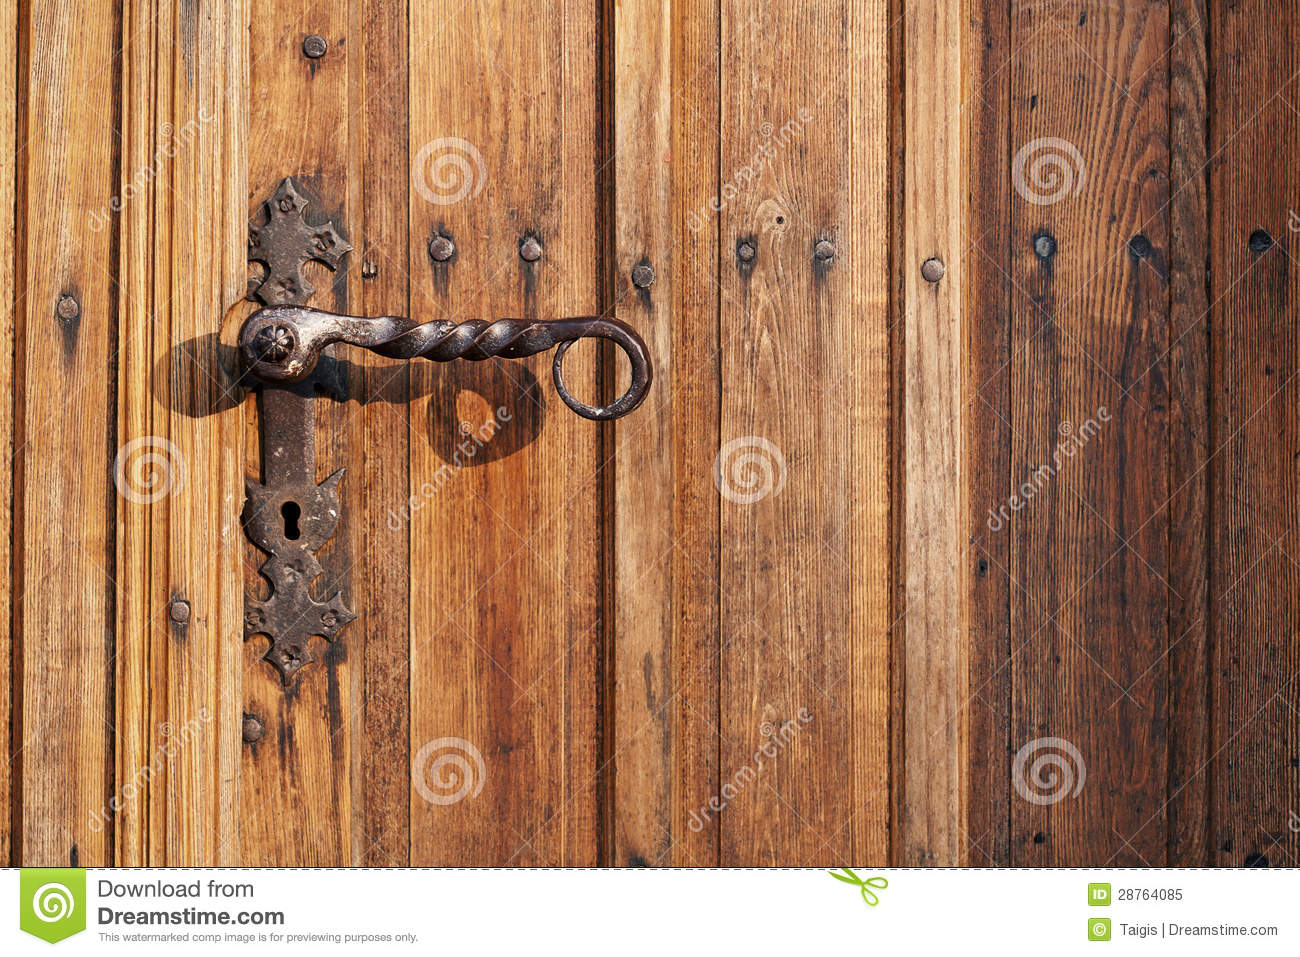 Ancient rusty church door handle on brown old wooden door.